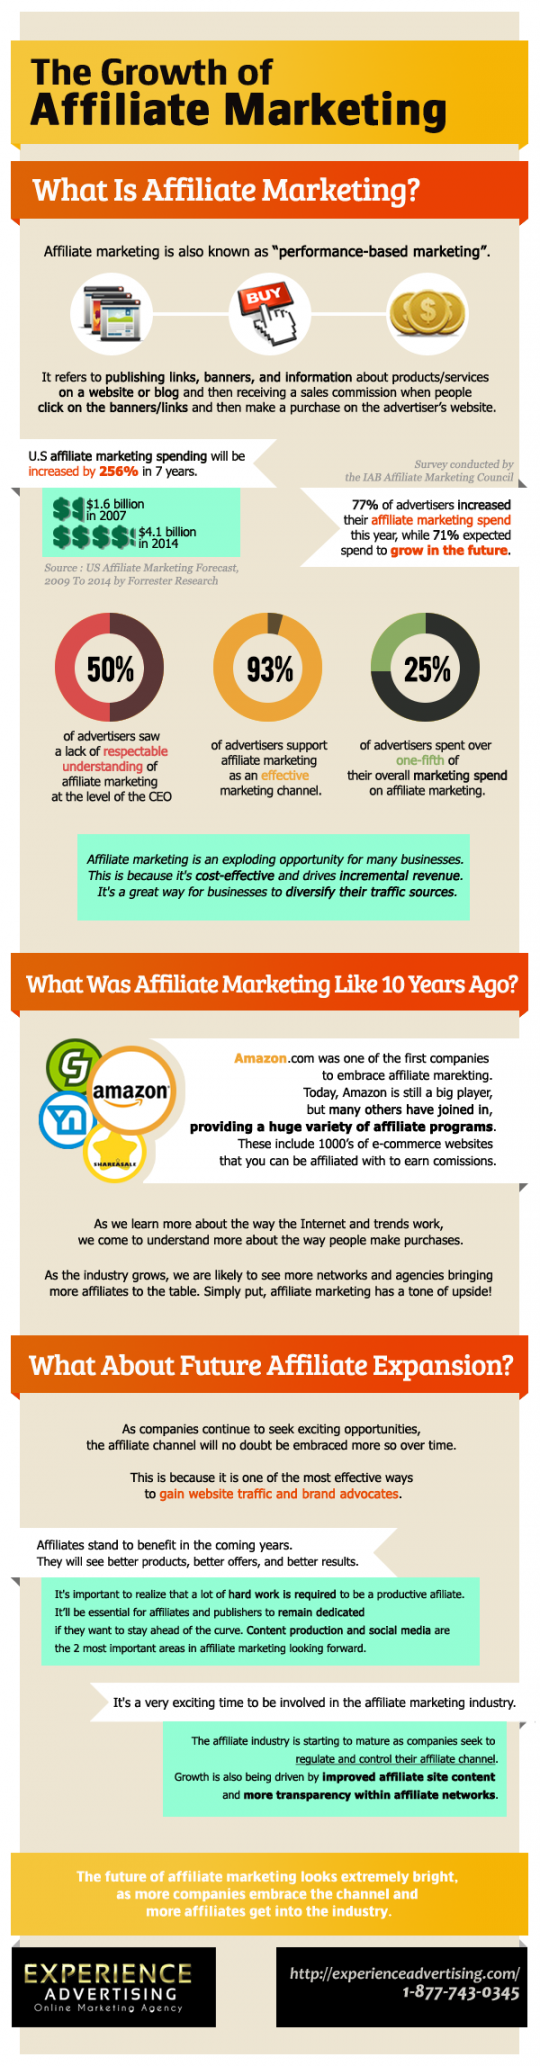 The Growth of Affiliate Marketing